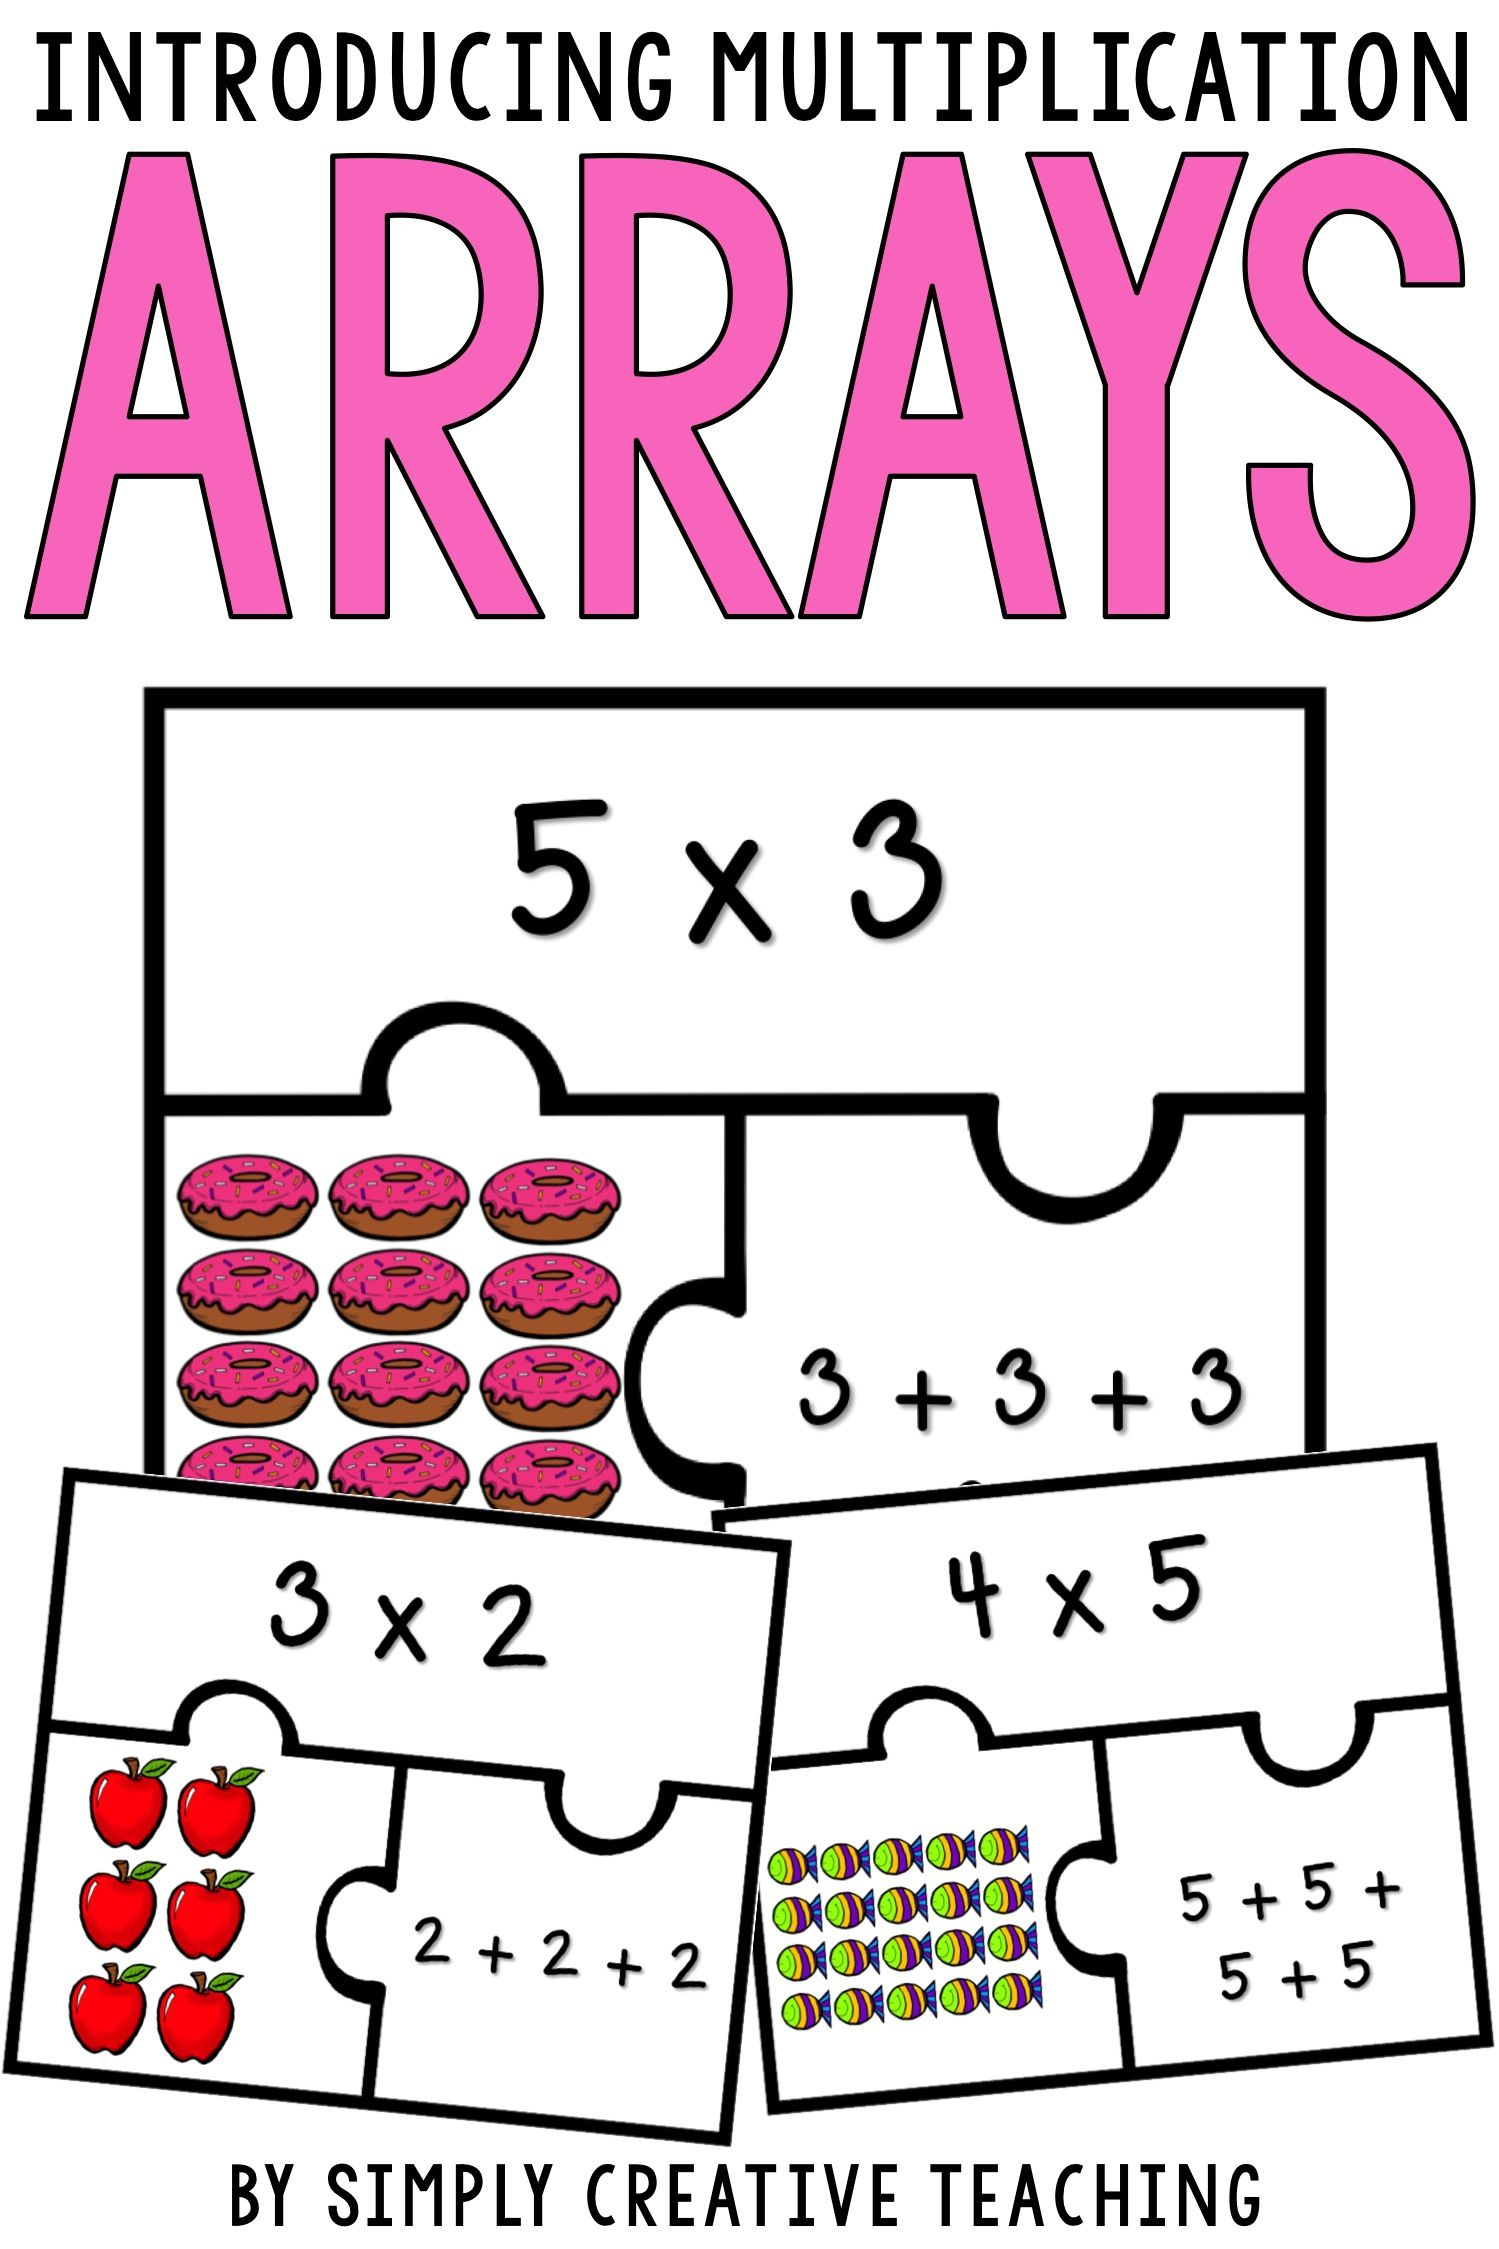 Introducing Multiplication To Your 2nd And 3rd Grade Students Is Fun With These Multip Multiplication Activities Repeated Addition Worksheets Repeated Addition